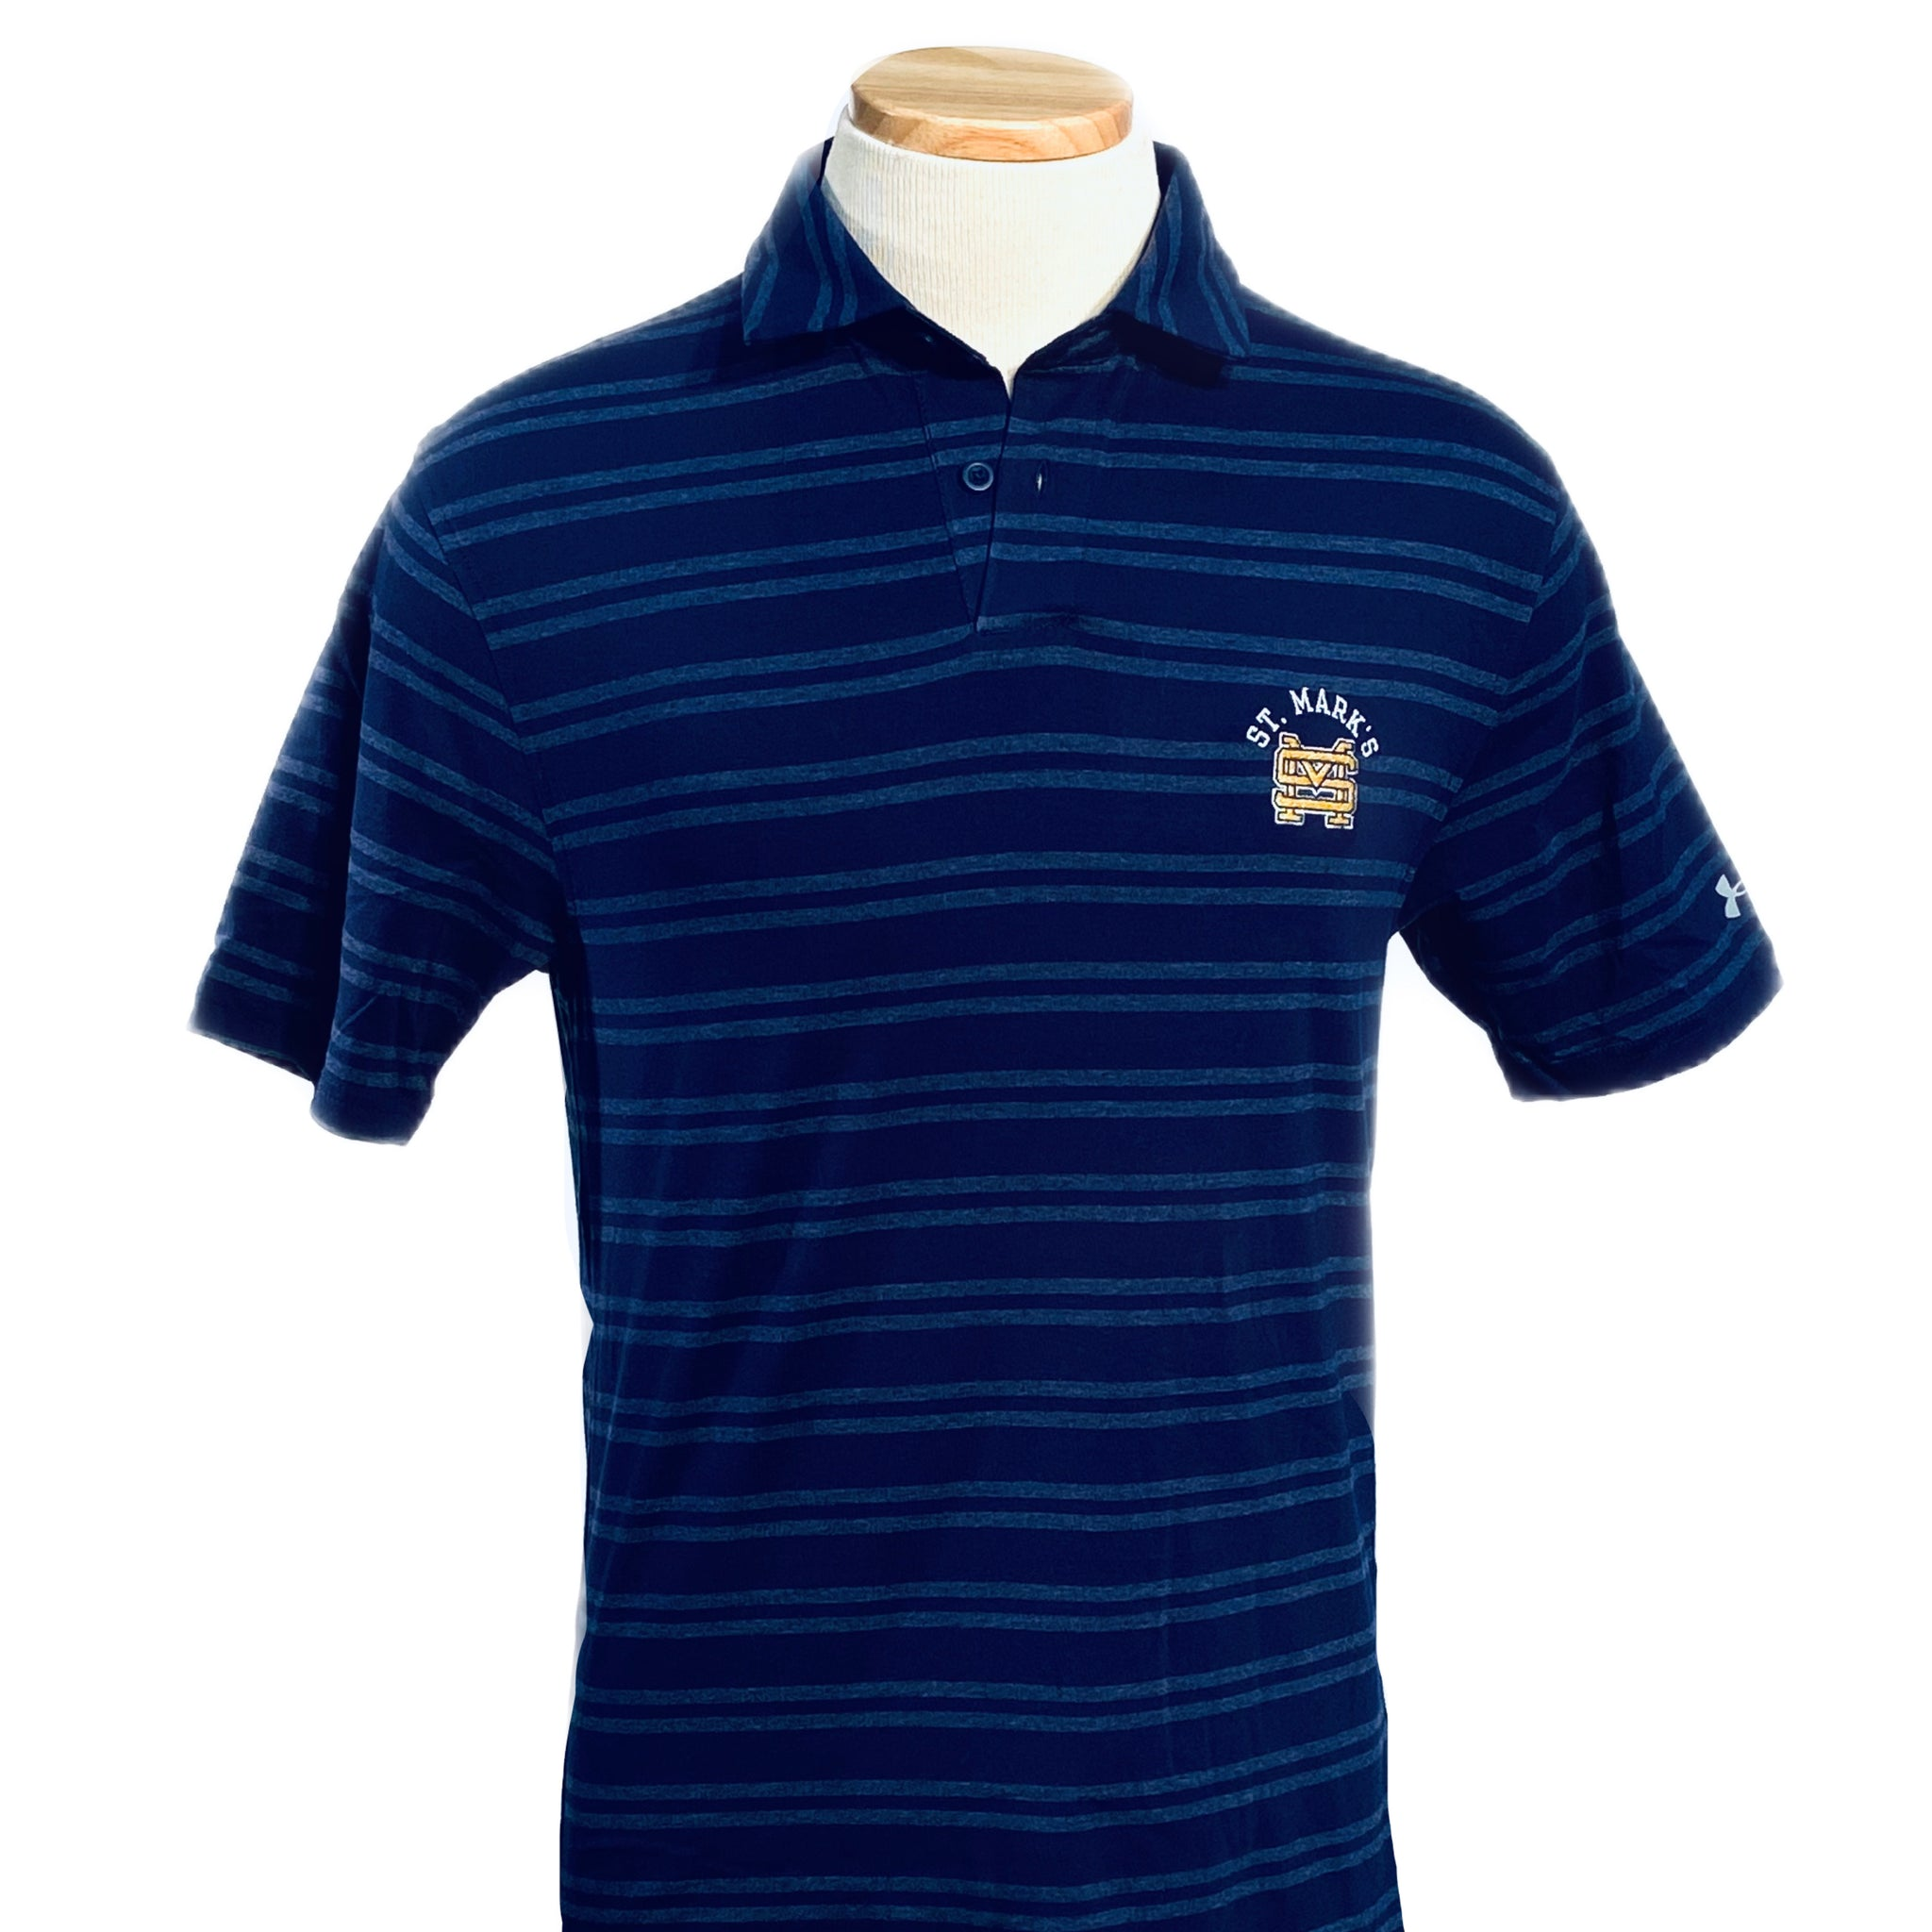 Under Armour Performance Striped Polo